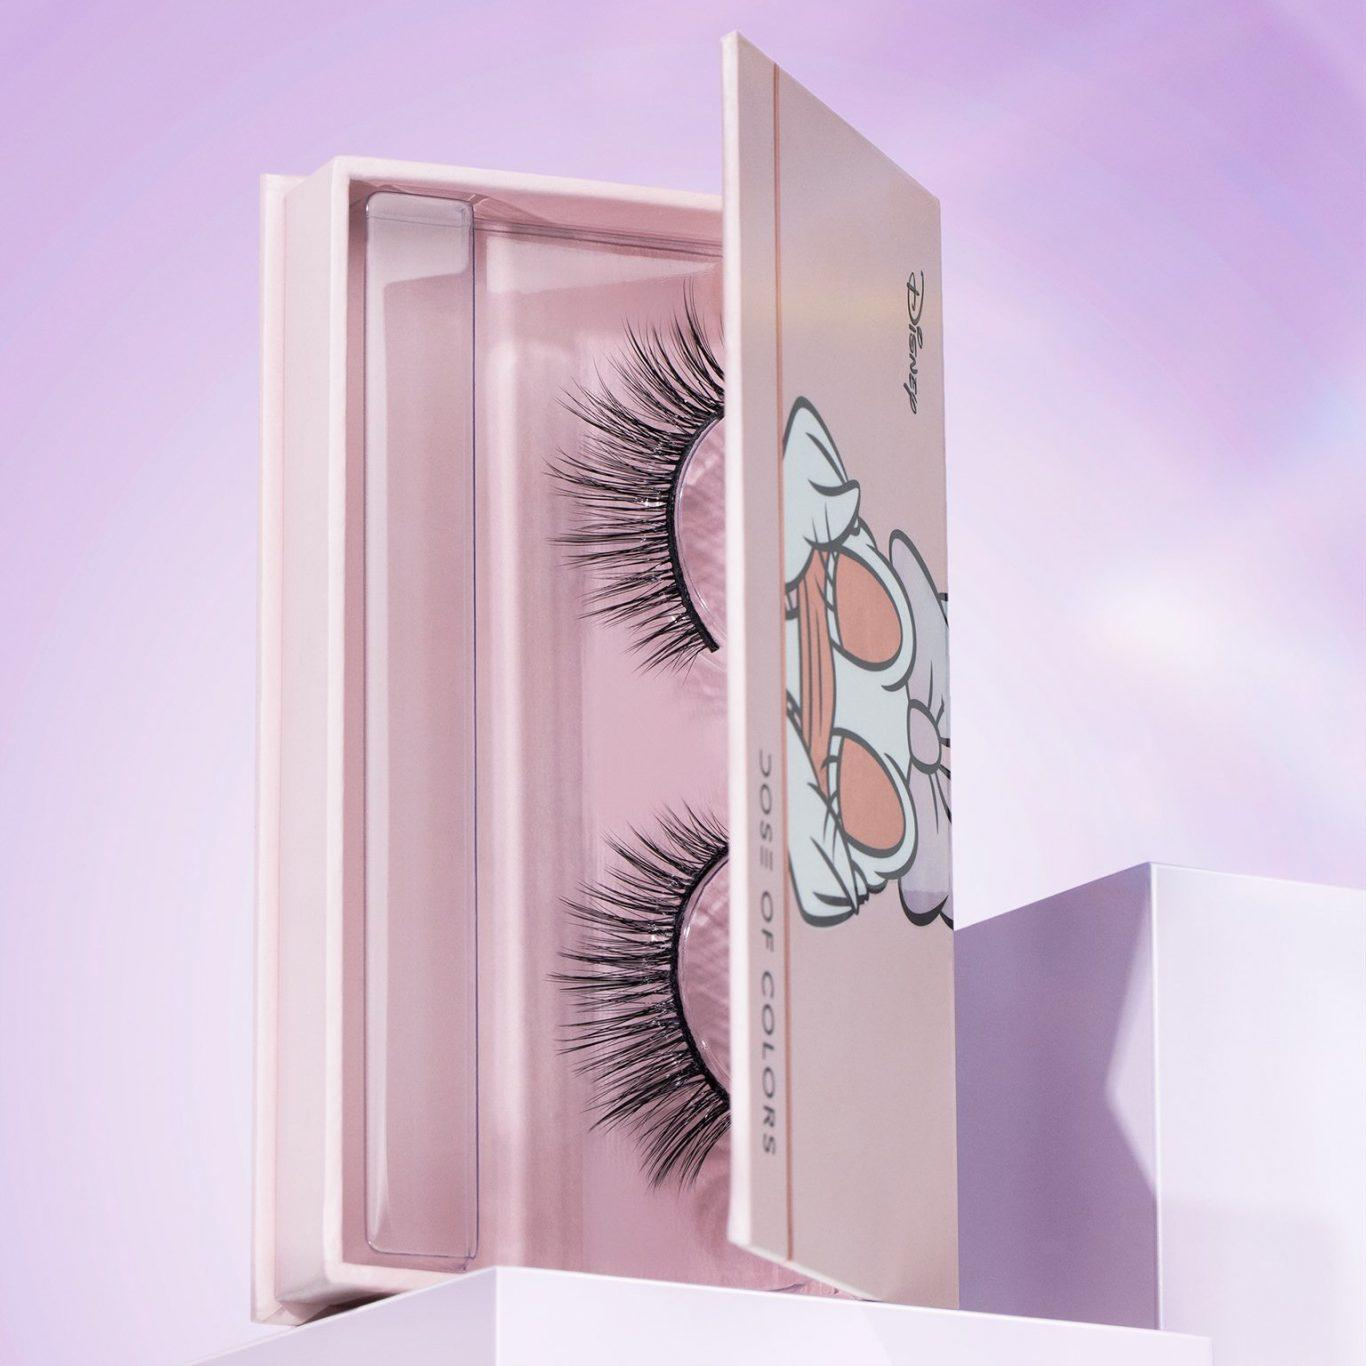 Dose Of Colors Donald Duck & Daisy Duck Collection All That Sass! Donald & Daisy Lashes Promo